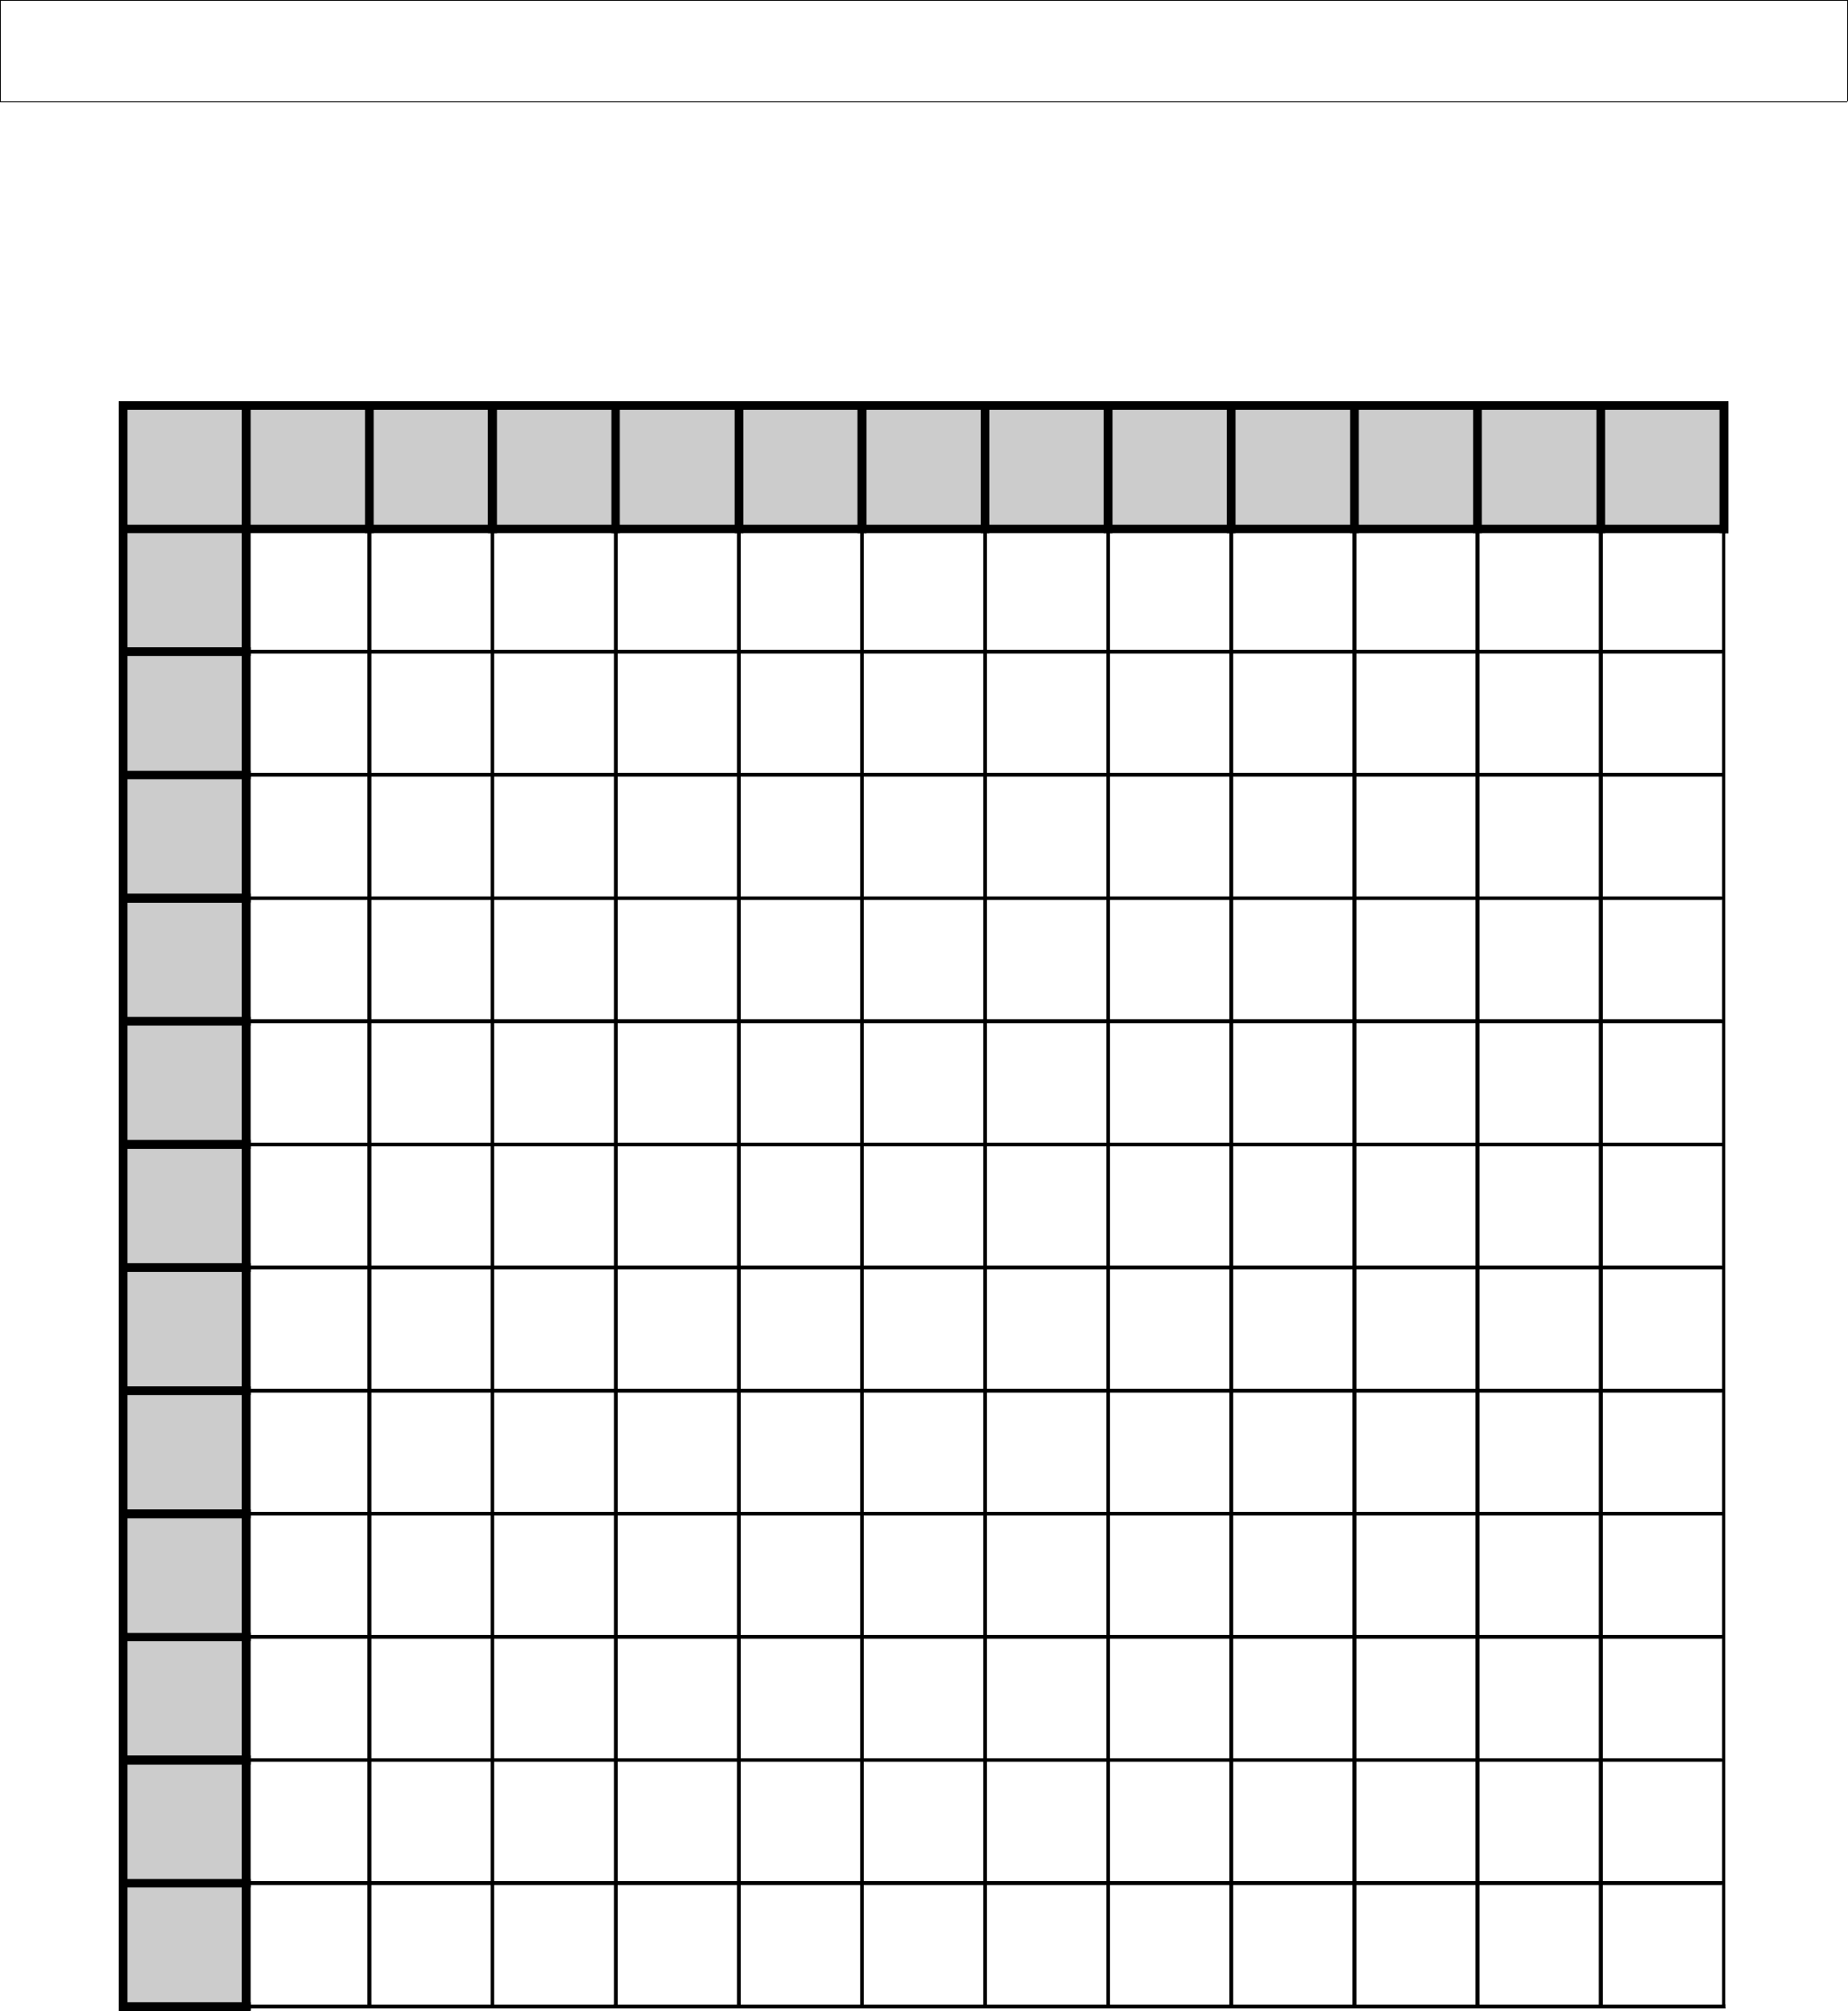 Blank Multiplication Table 1 12 Printable free math printable – Multiplication Tables 1-12 Printable Worksheets